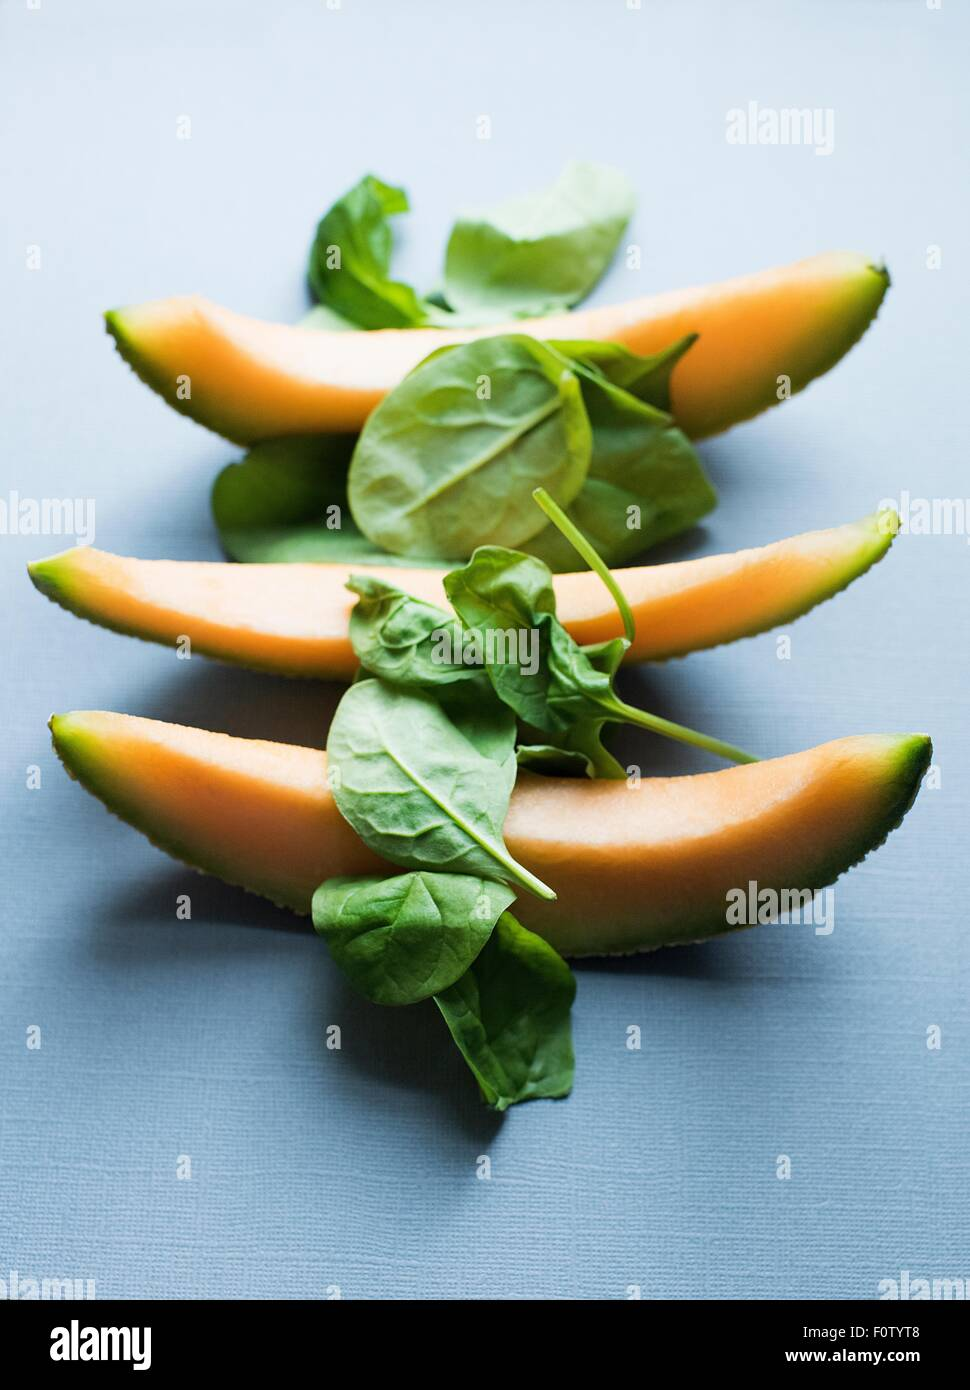 Three slices of fresh melon and spinach - Stock Image